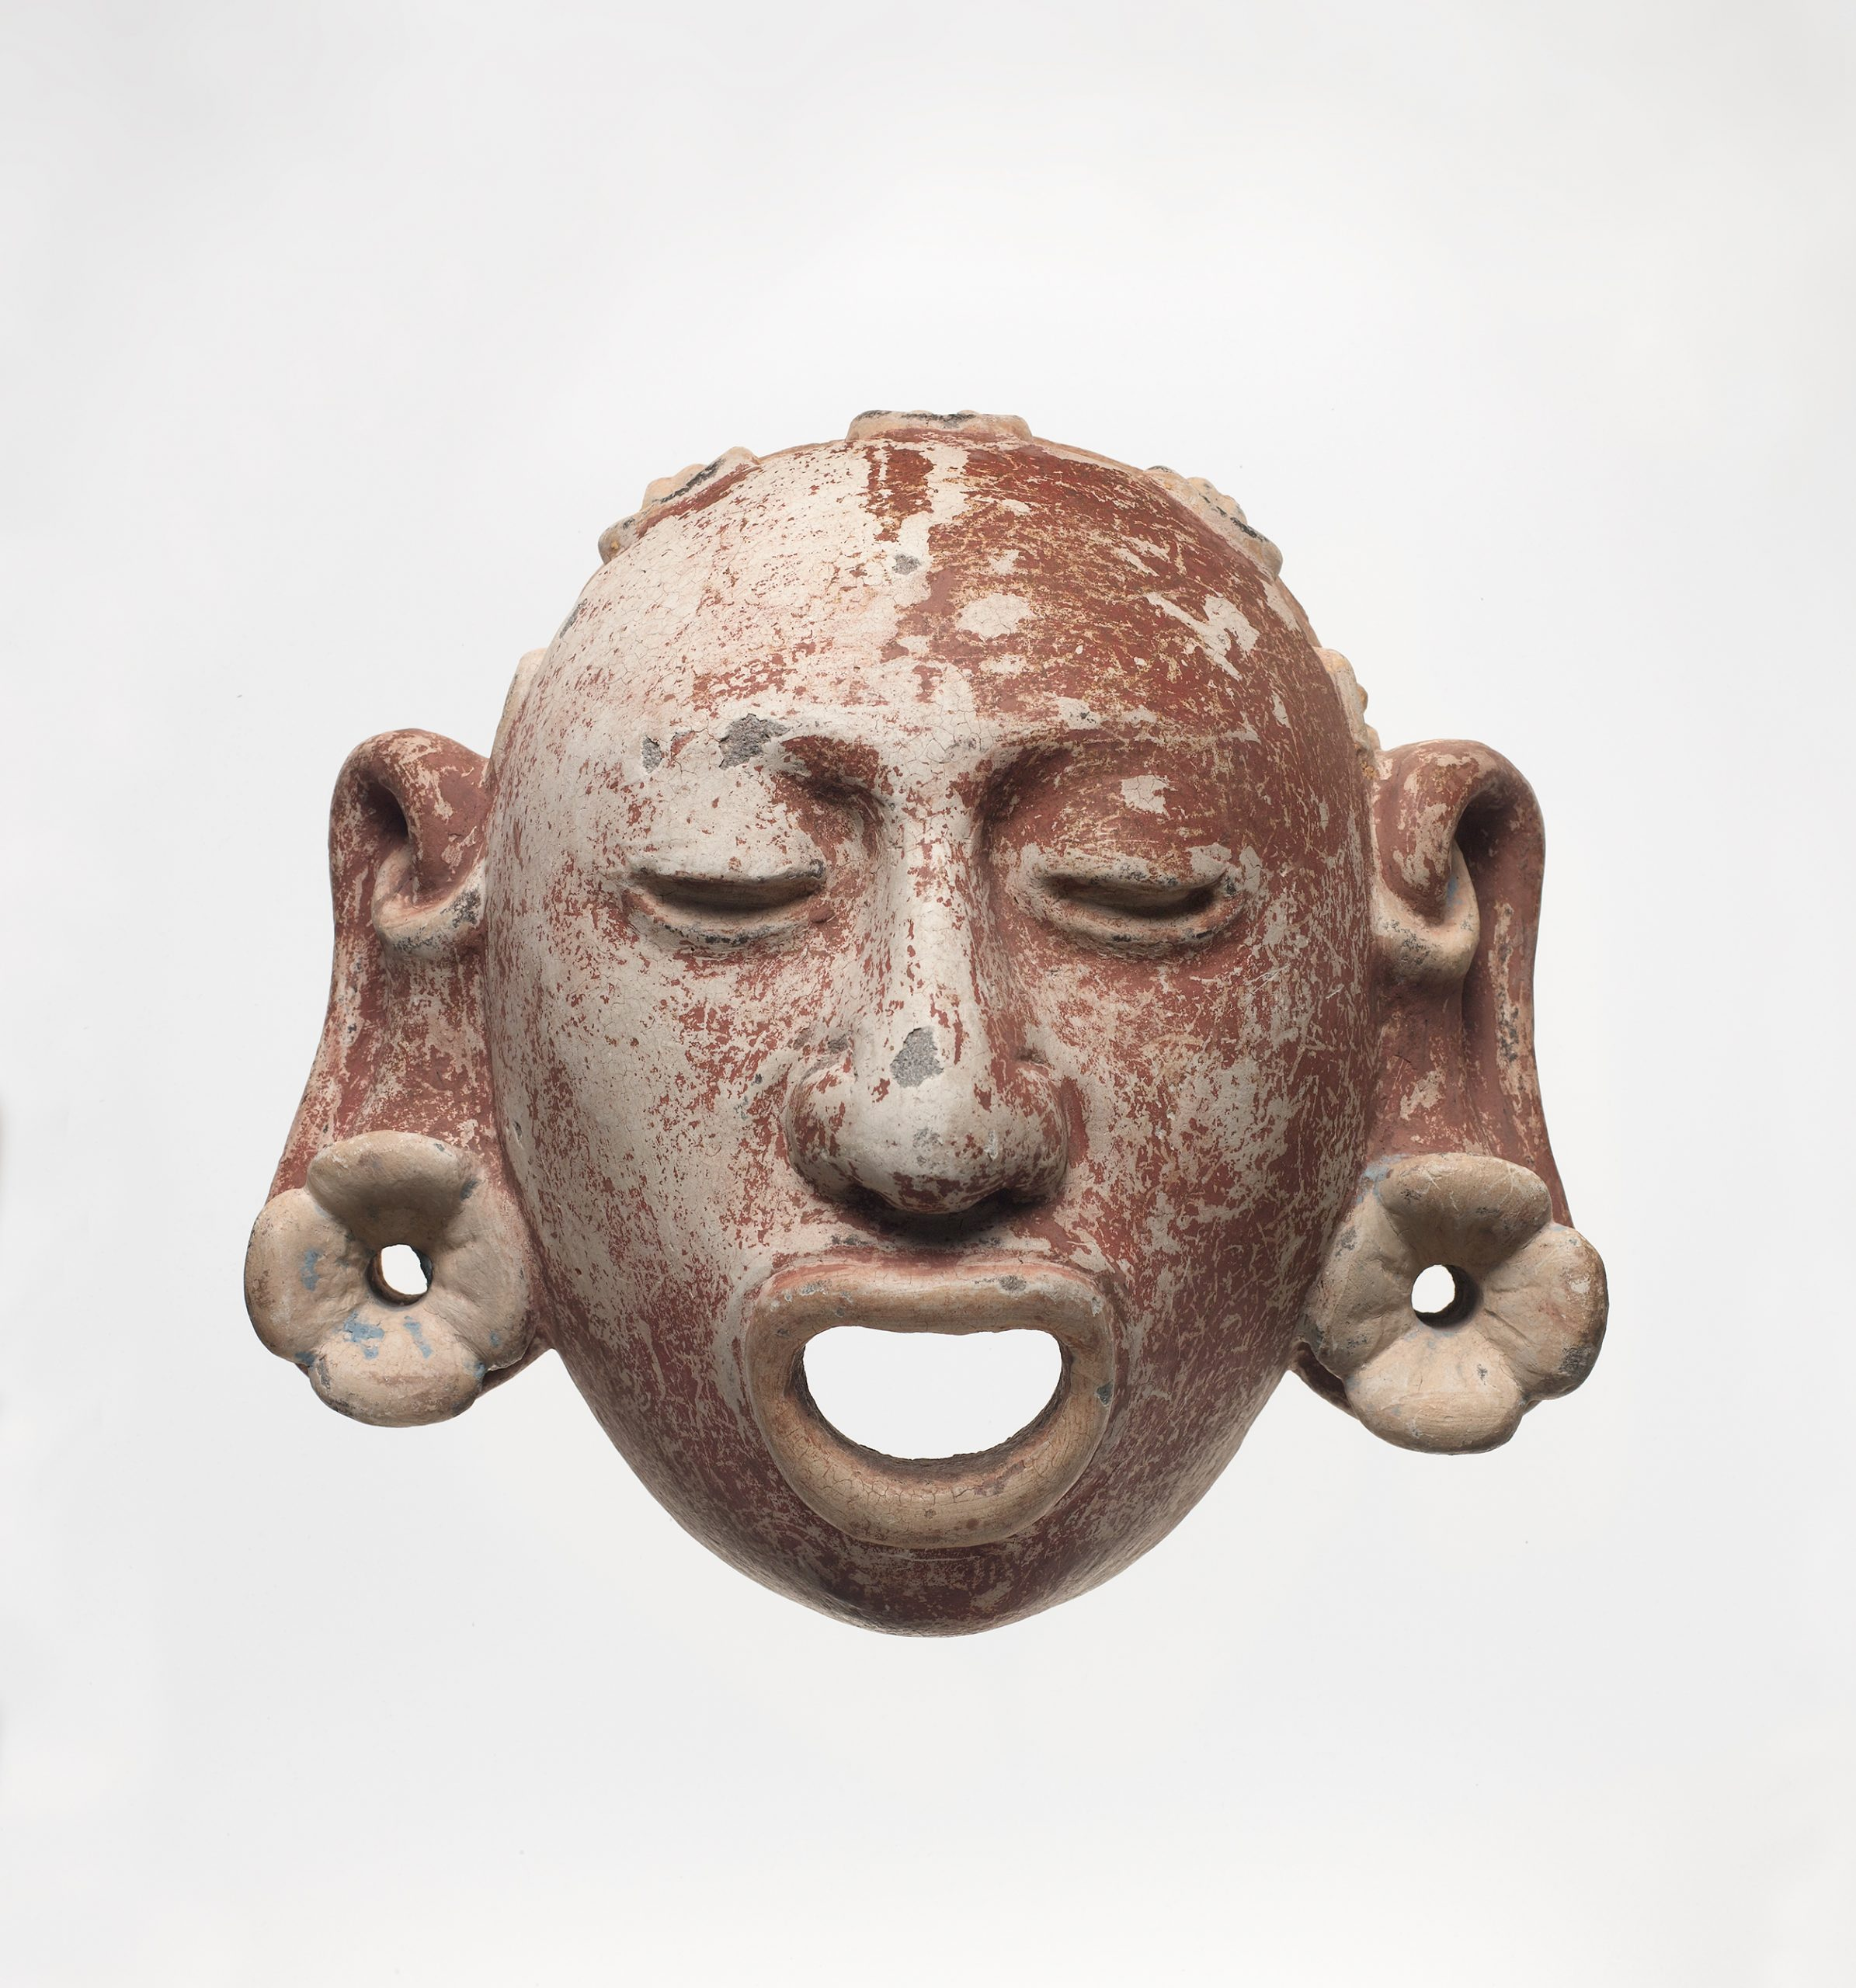 Decorative stone mask of an Aztec god with open mouth, closed eyes, and large pierced ears.